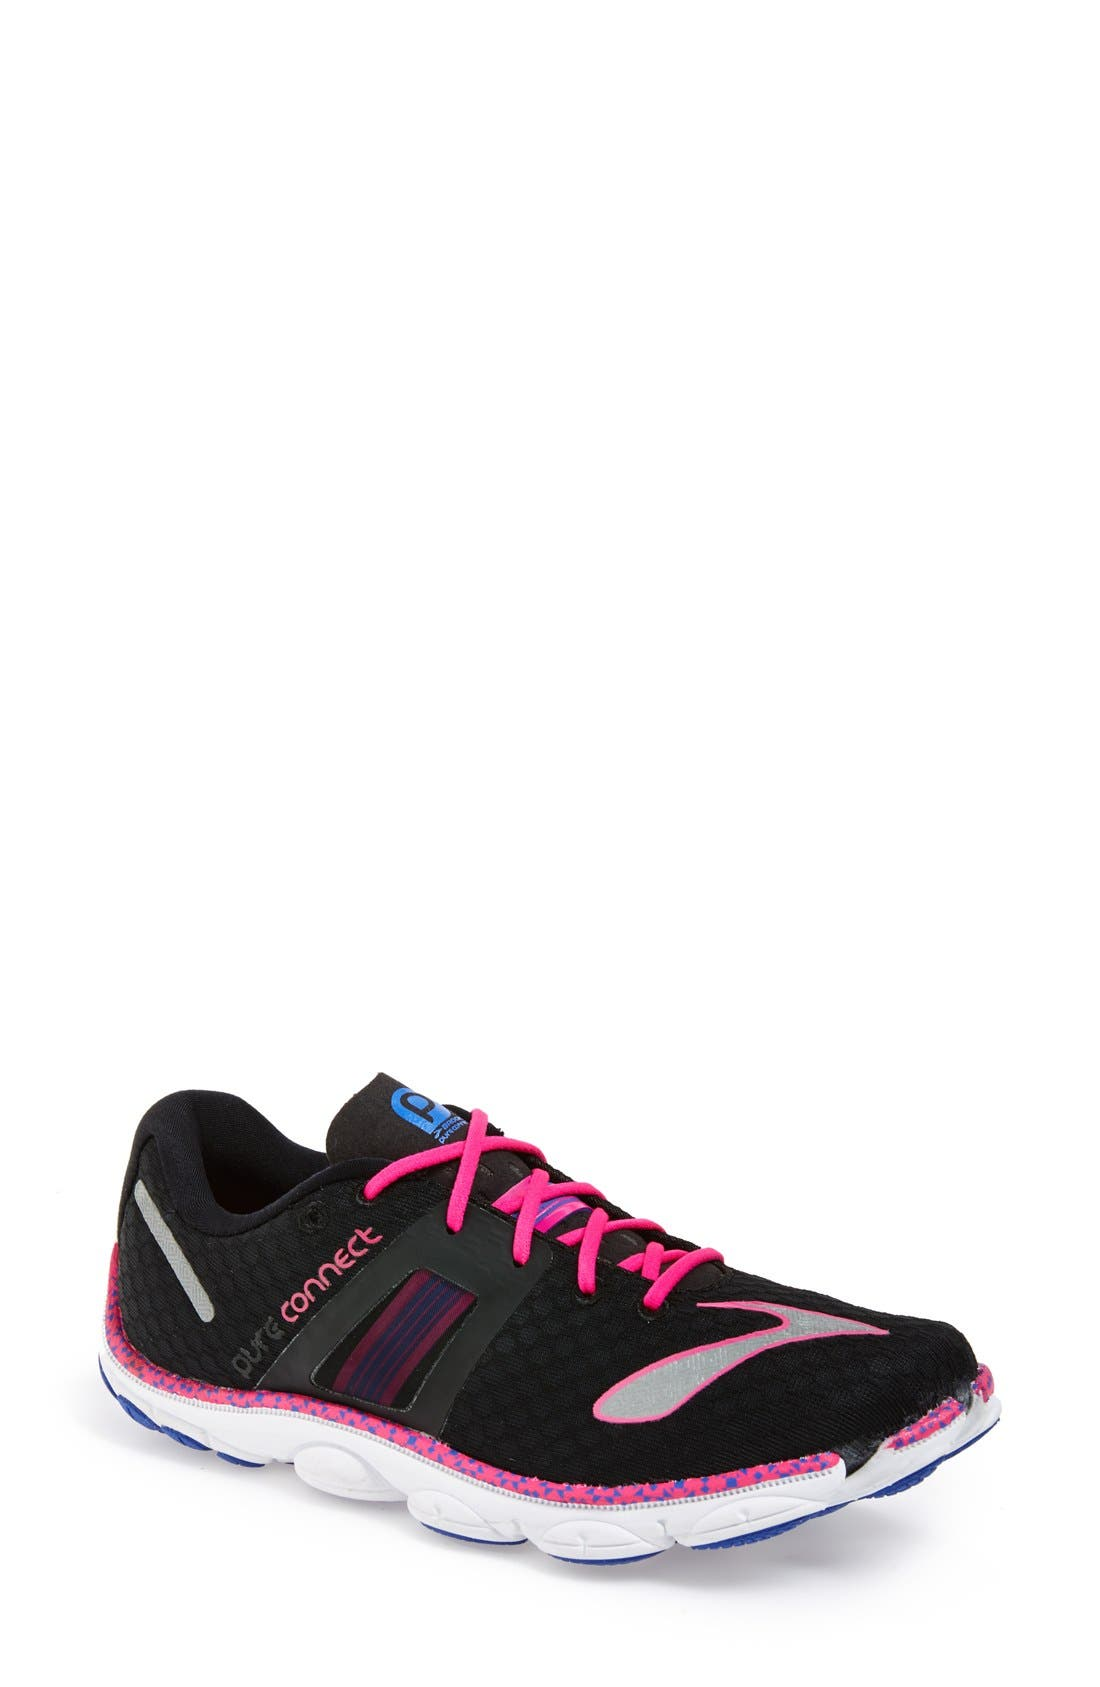 BROOKS 'Pure Connect 4' Running Shoe, Main, color, 051